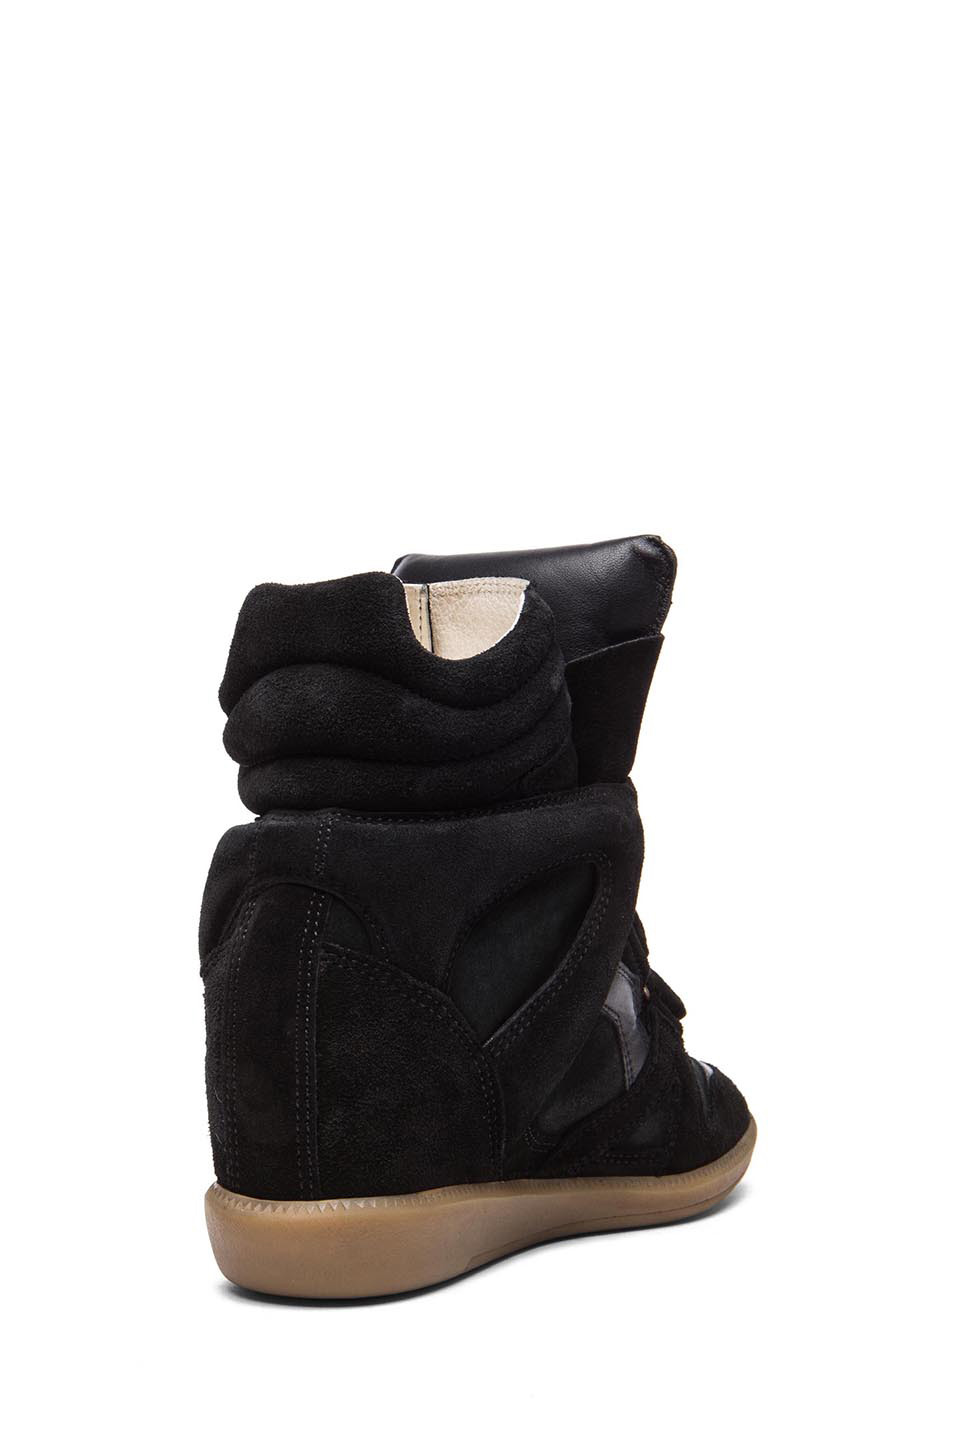 Isabel Marant|Bekett Sneaker in Faded Black